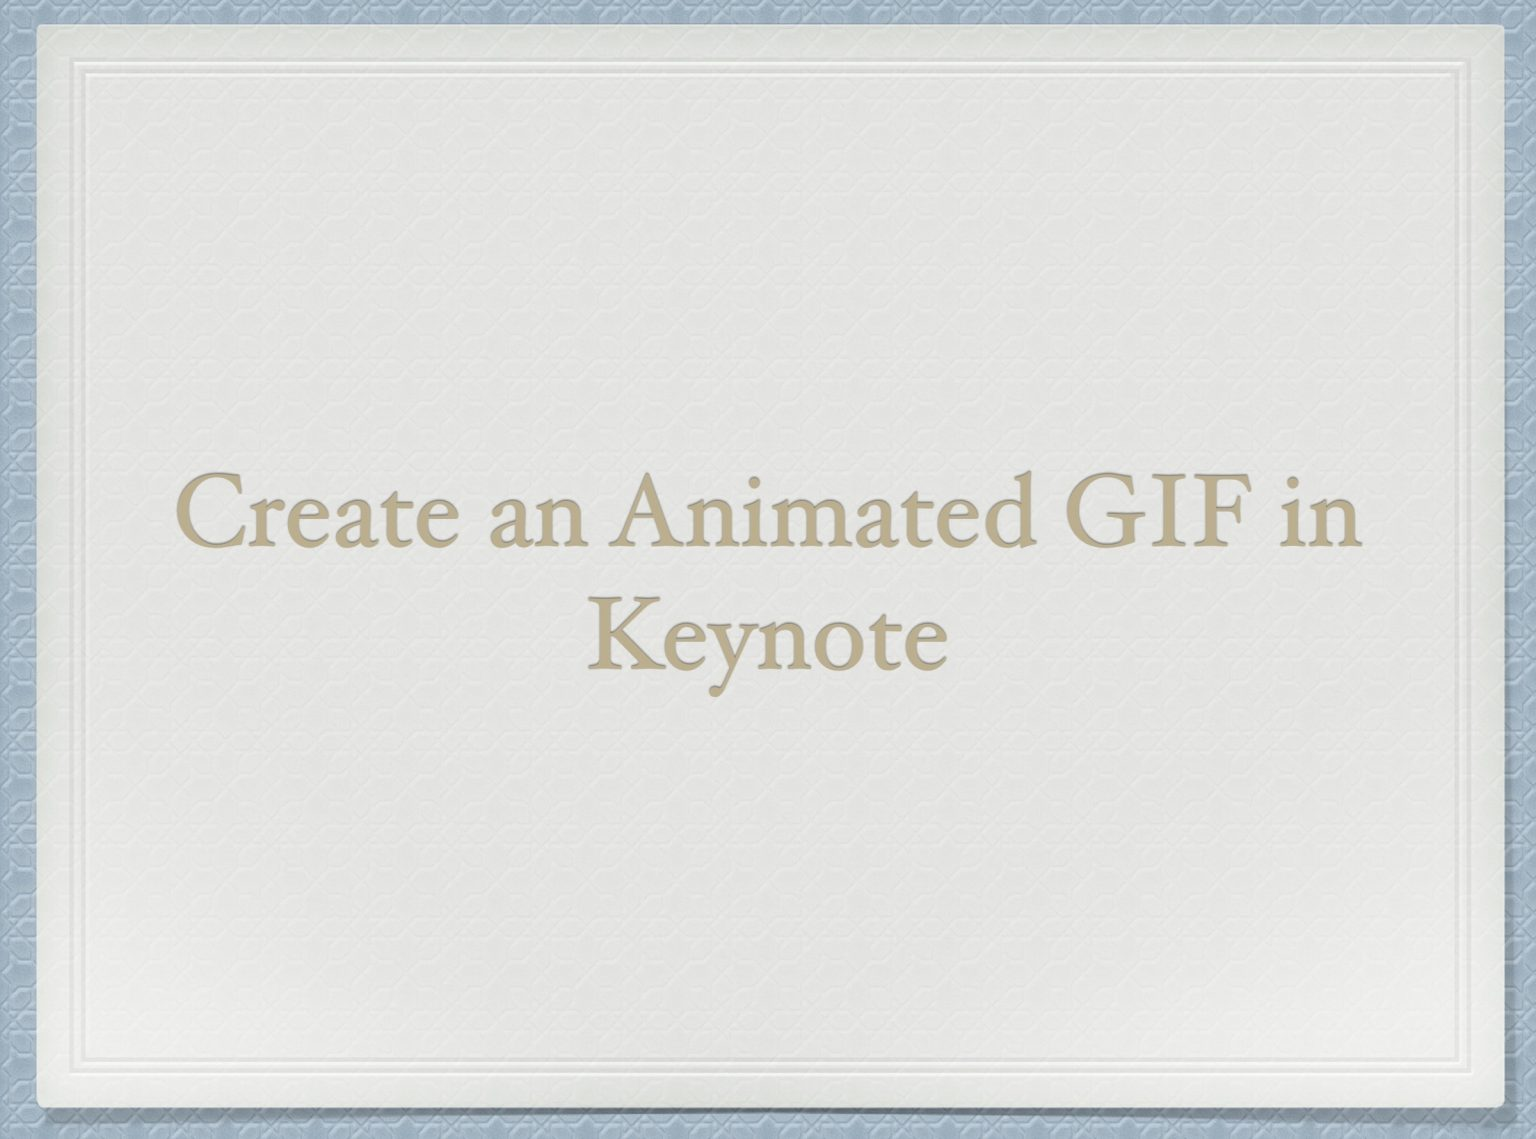 Create an Animated GIF